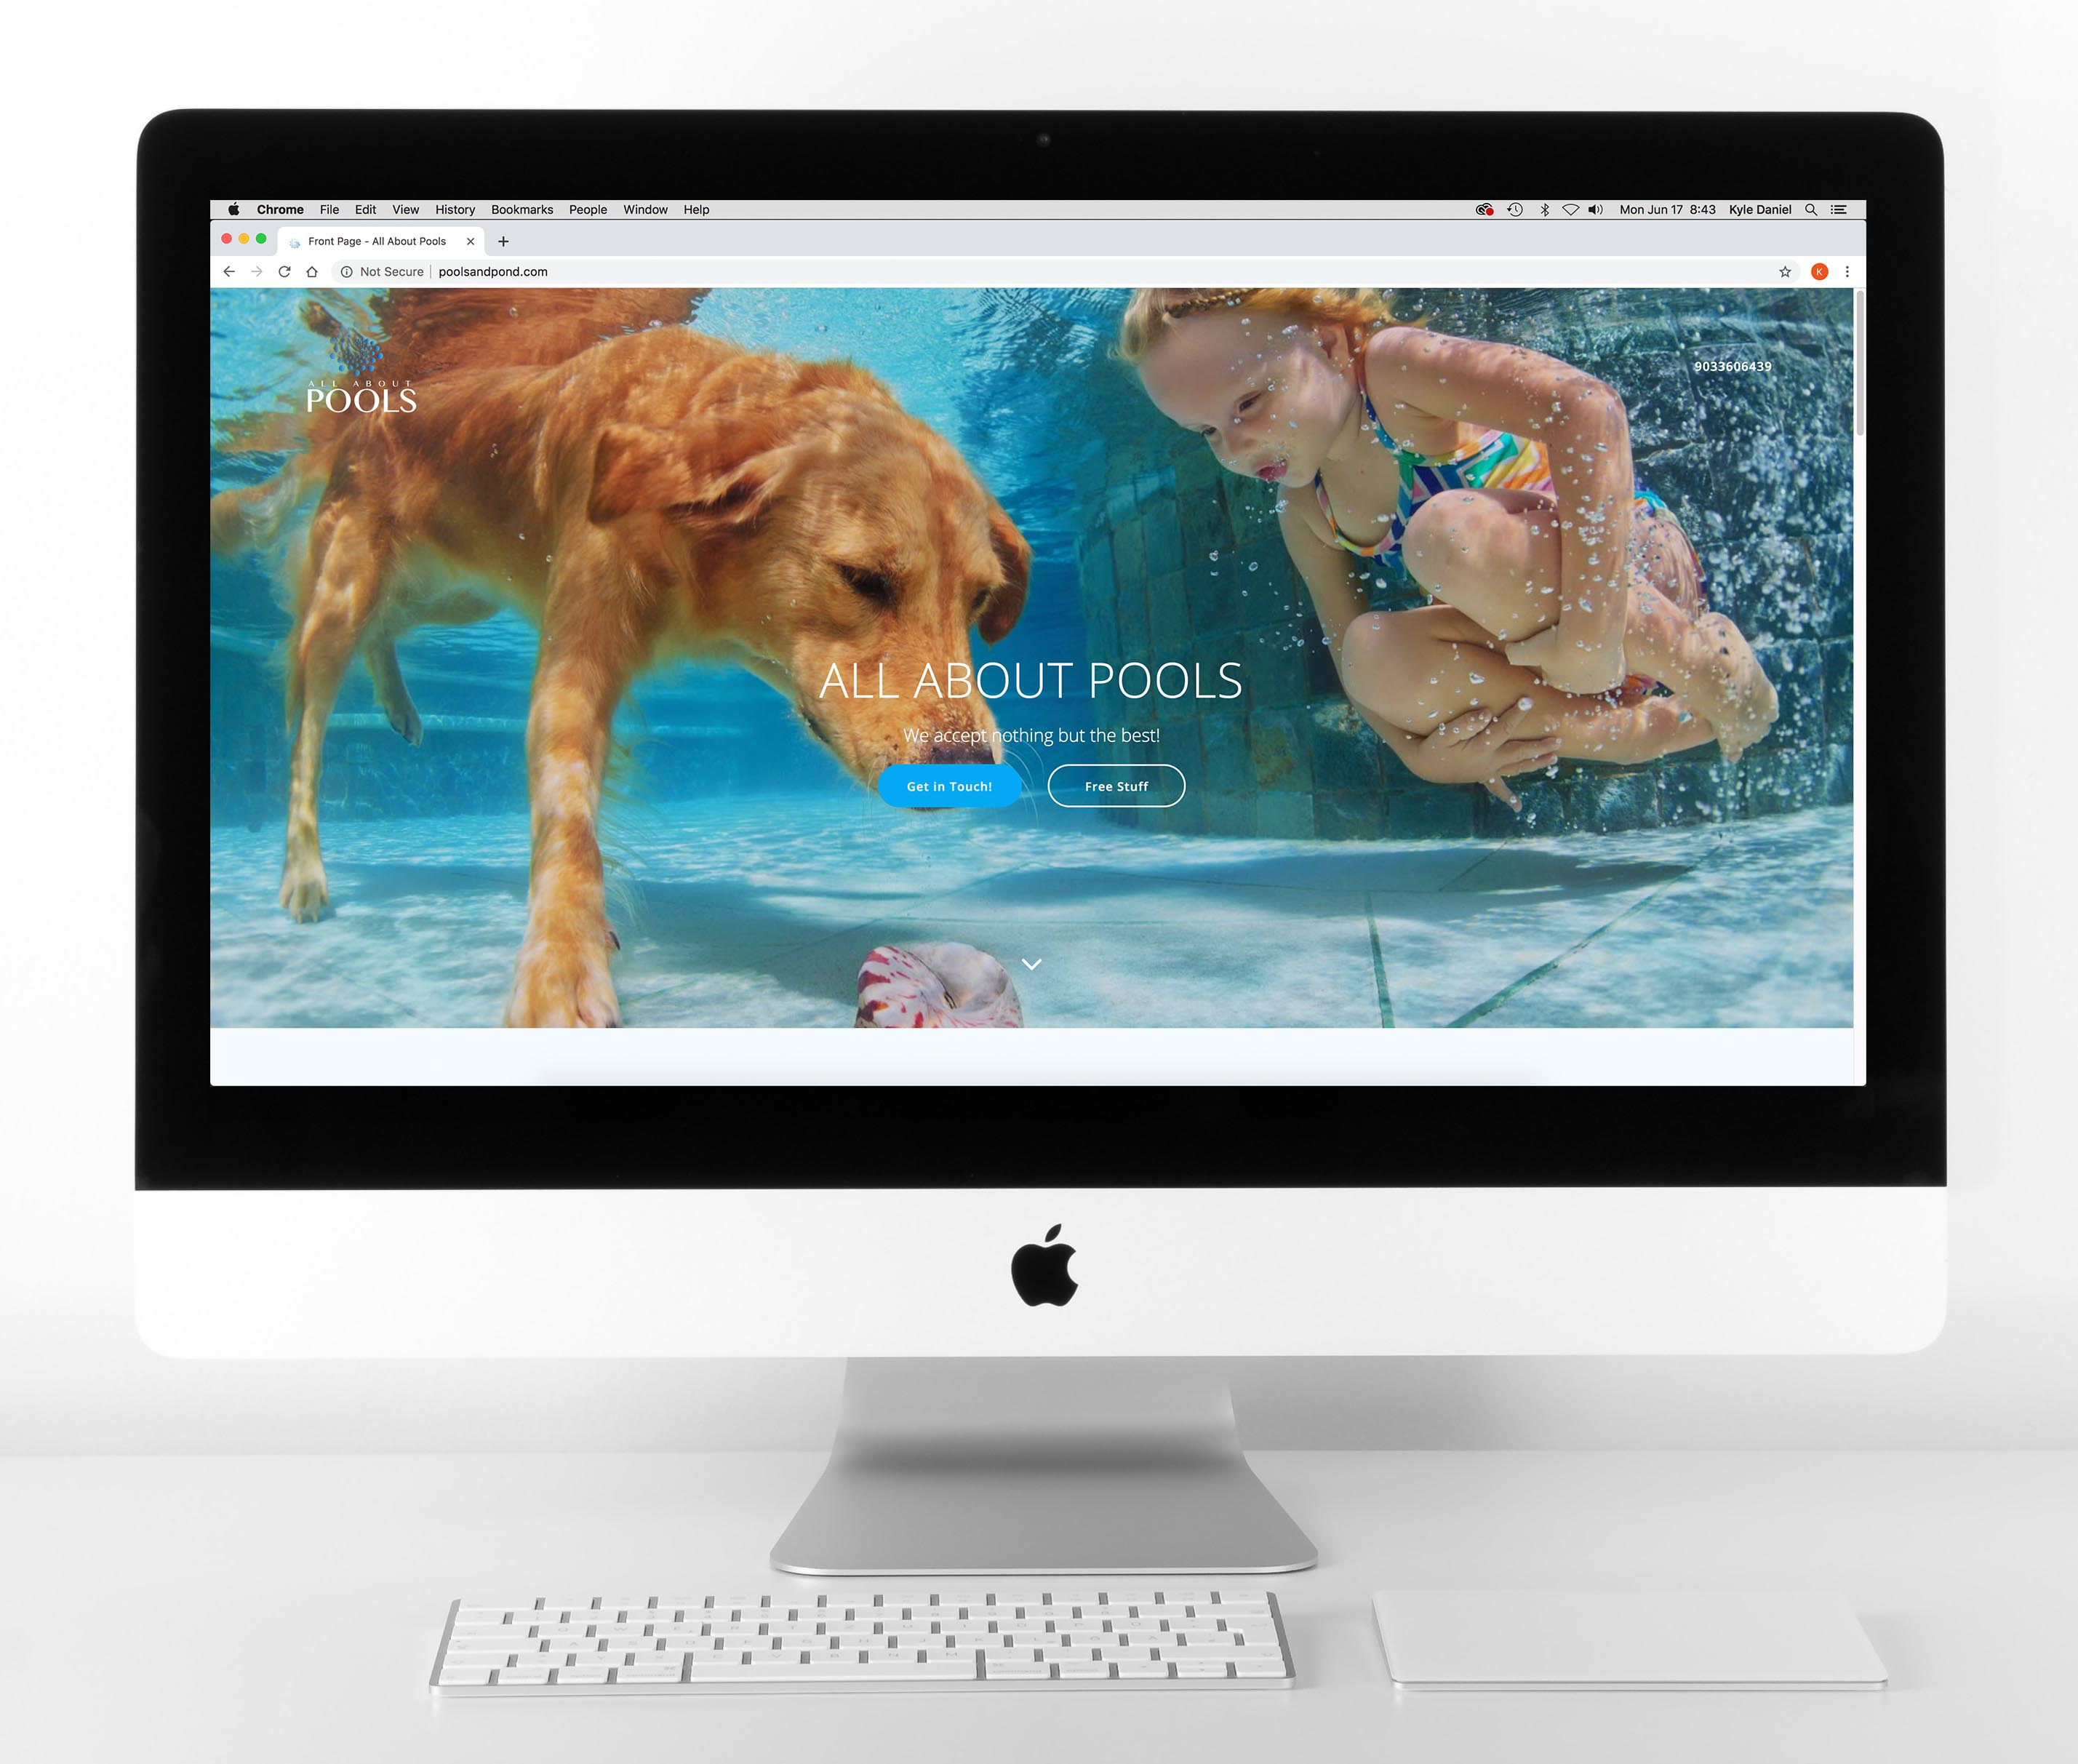 All About Pools Website Mockup